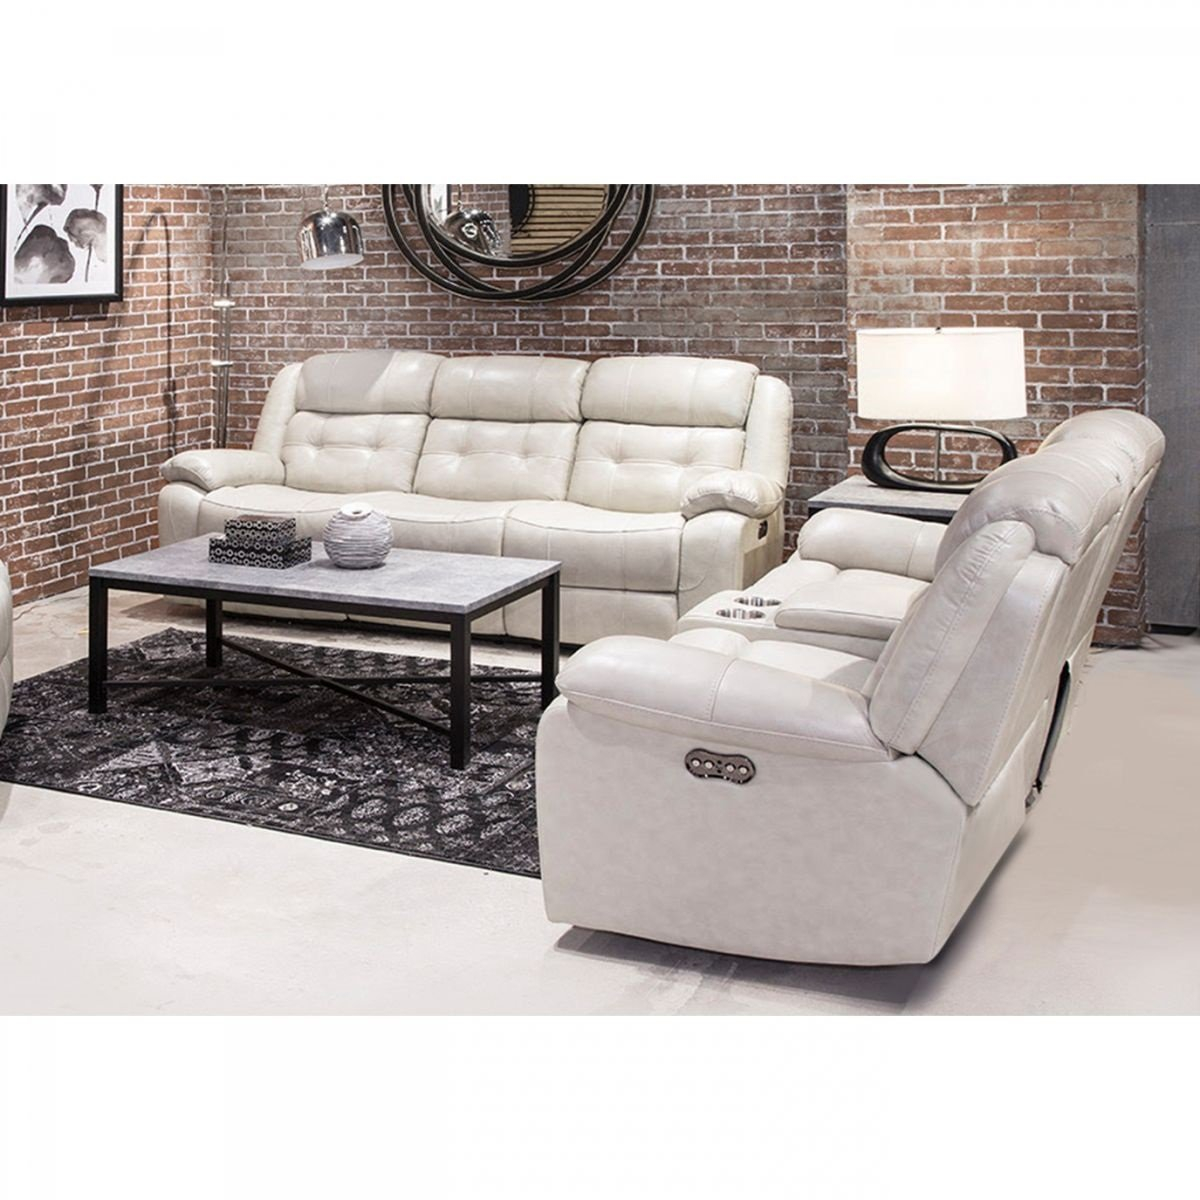 Holbrook Putty Leather Reclining Sofa Console Loveseat Badcock within 10 Clever Designs of How to Make Beige Leather Living Room Set